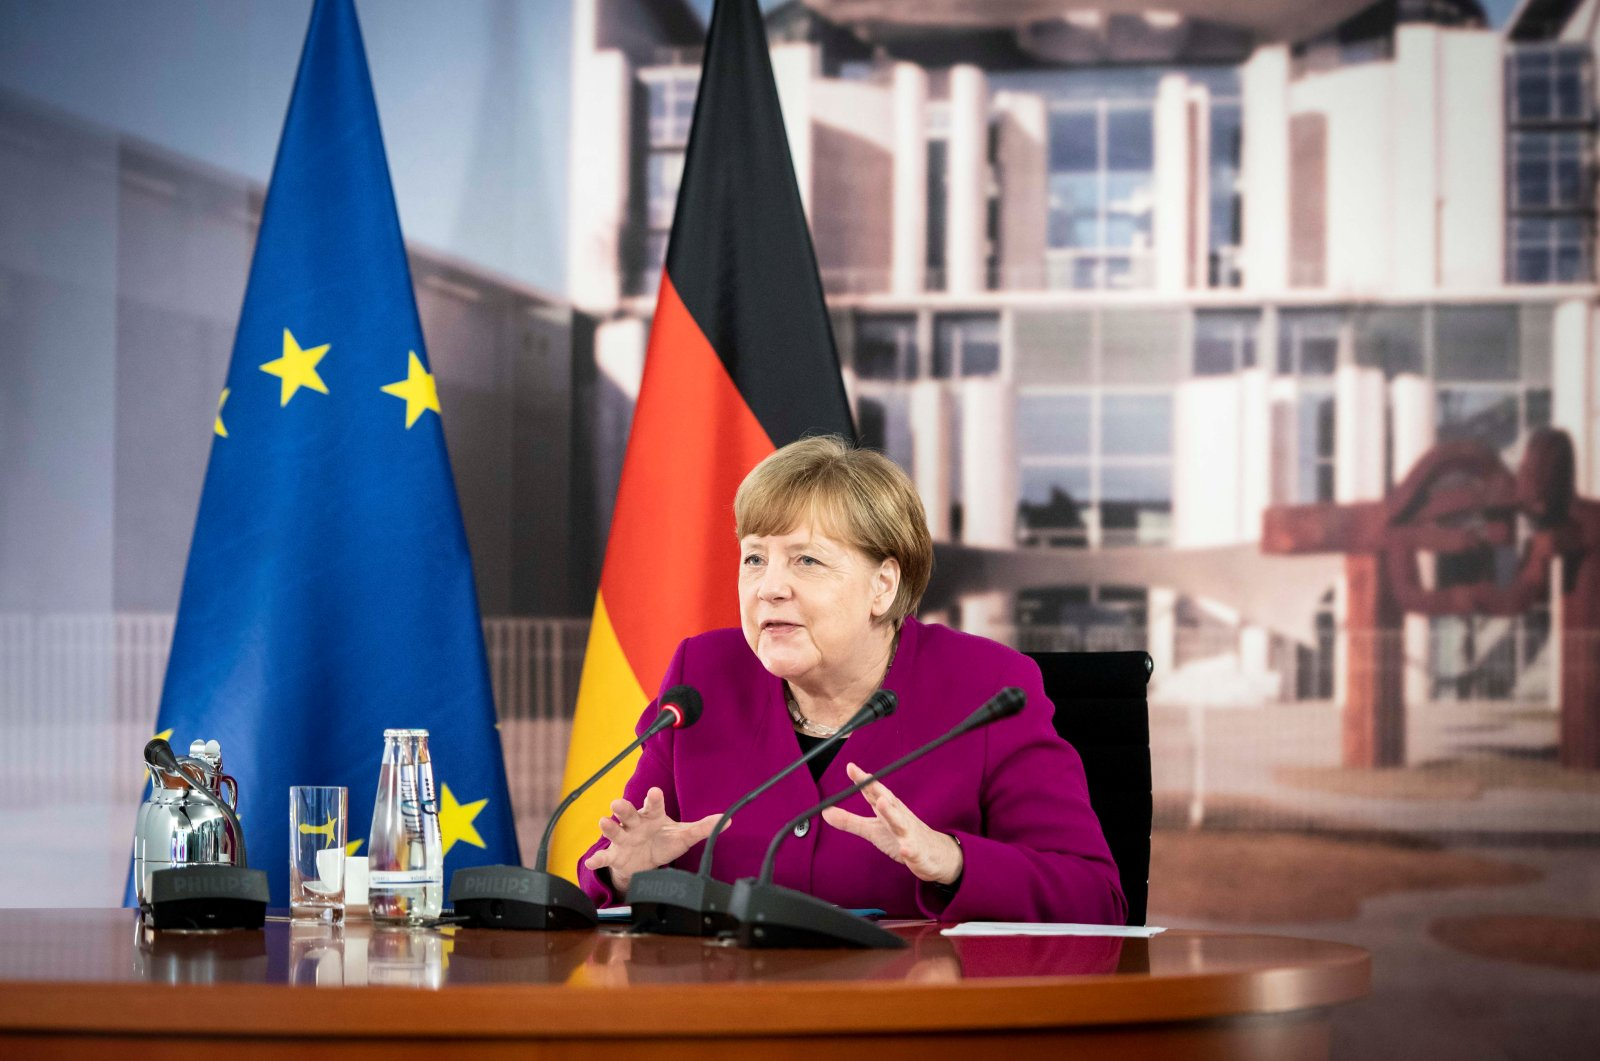 A handout picture shows German Chancellor Angela Merkel talking to French President Emmanuel Macron during a joint video conference in the chancellery in Berlin, May 18, 2020. (REUTERS Photo)